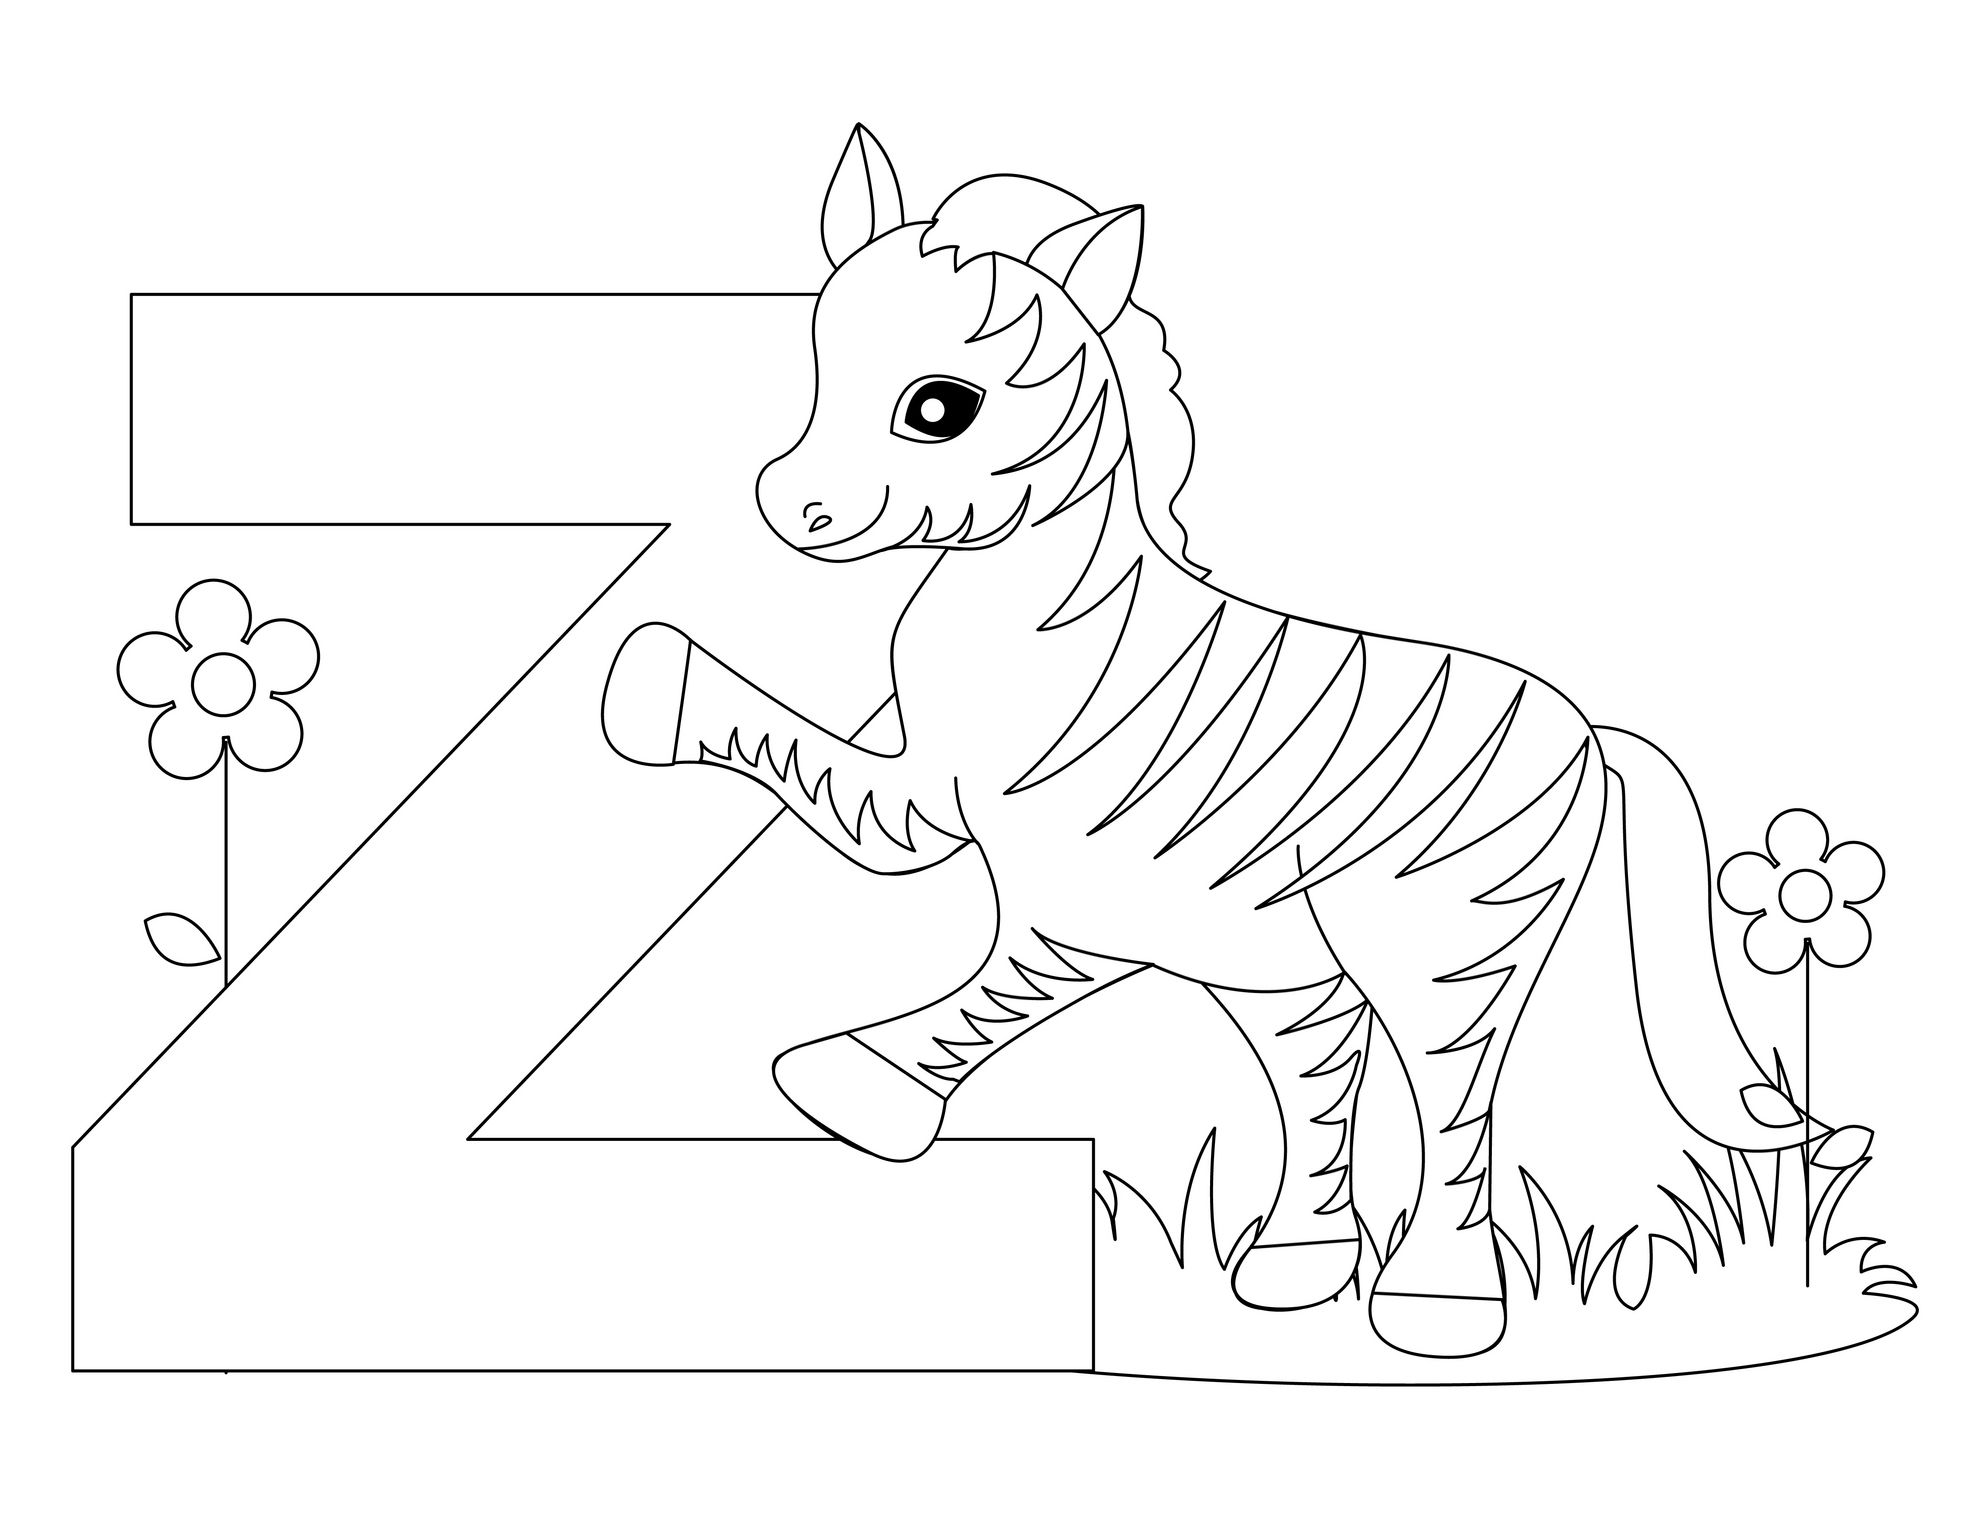 Alphabet coloring pages printable - Printable Animal Alphabet Worksheets Letter Z For Zebra Printable Coloring Pages For Kids